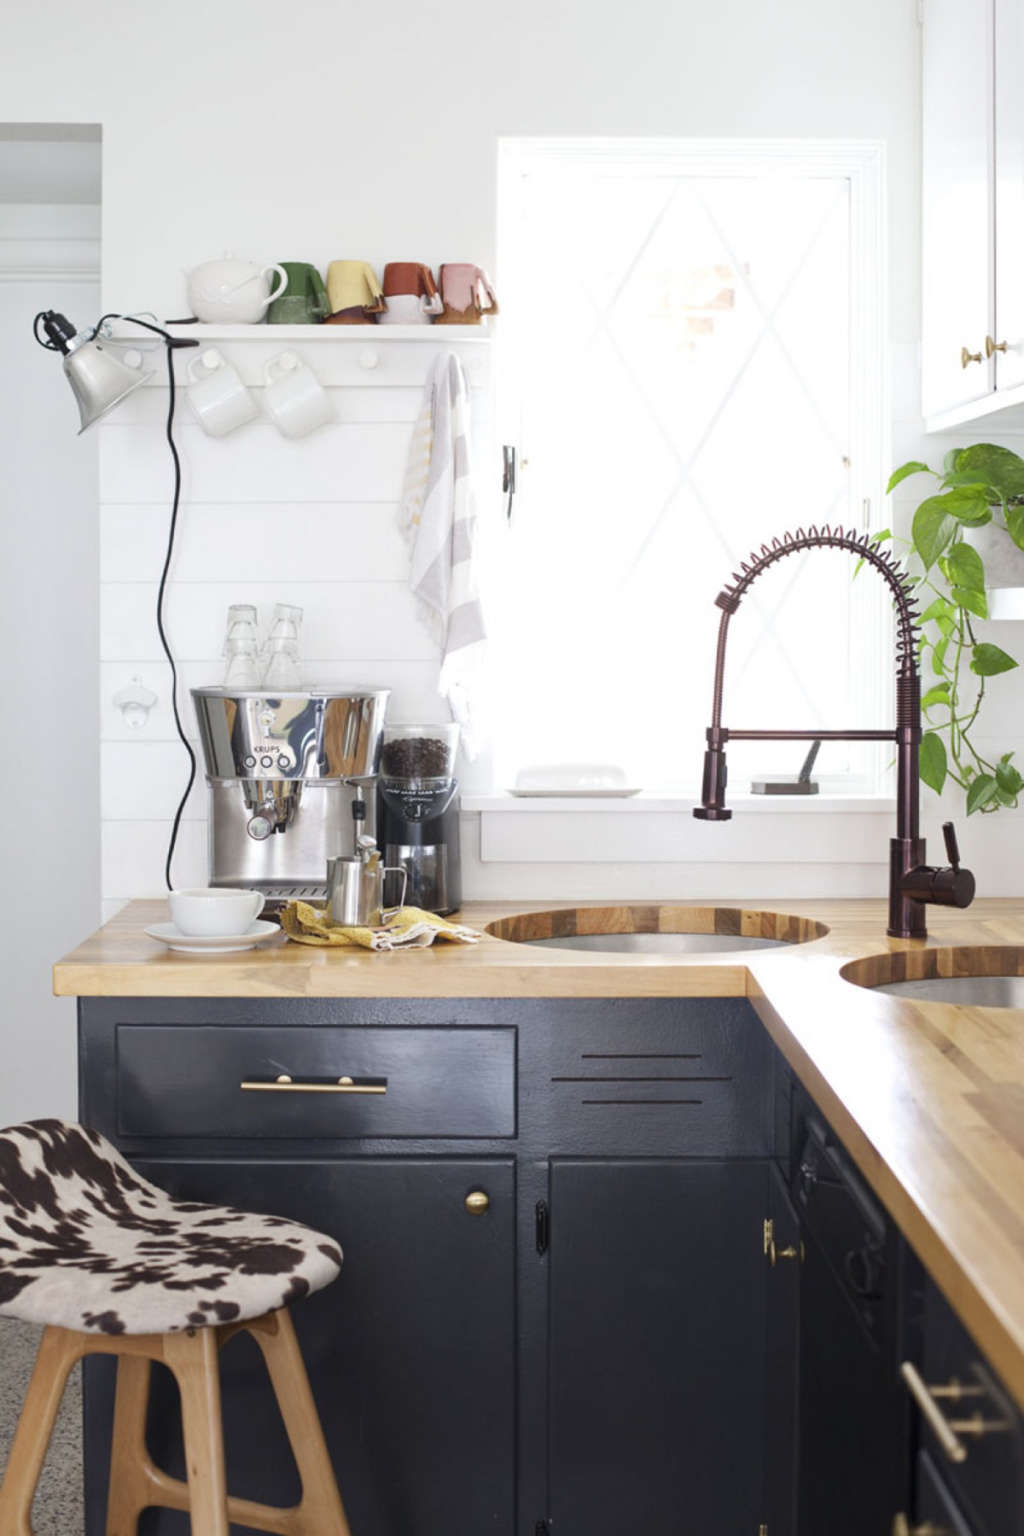 Terrific Kitchen Transformations For $2,000 to $4,000